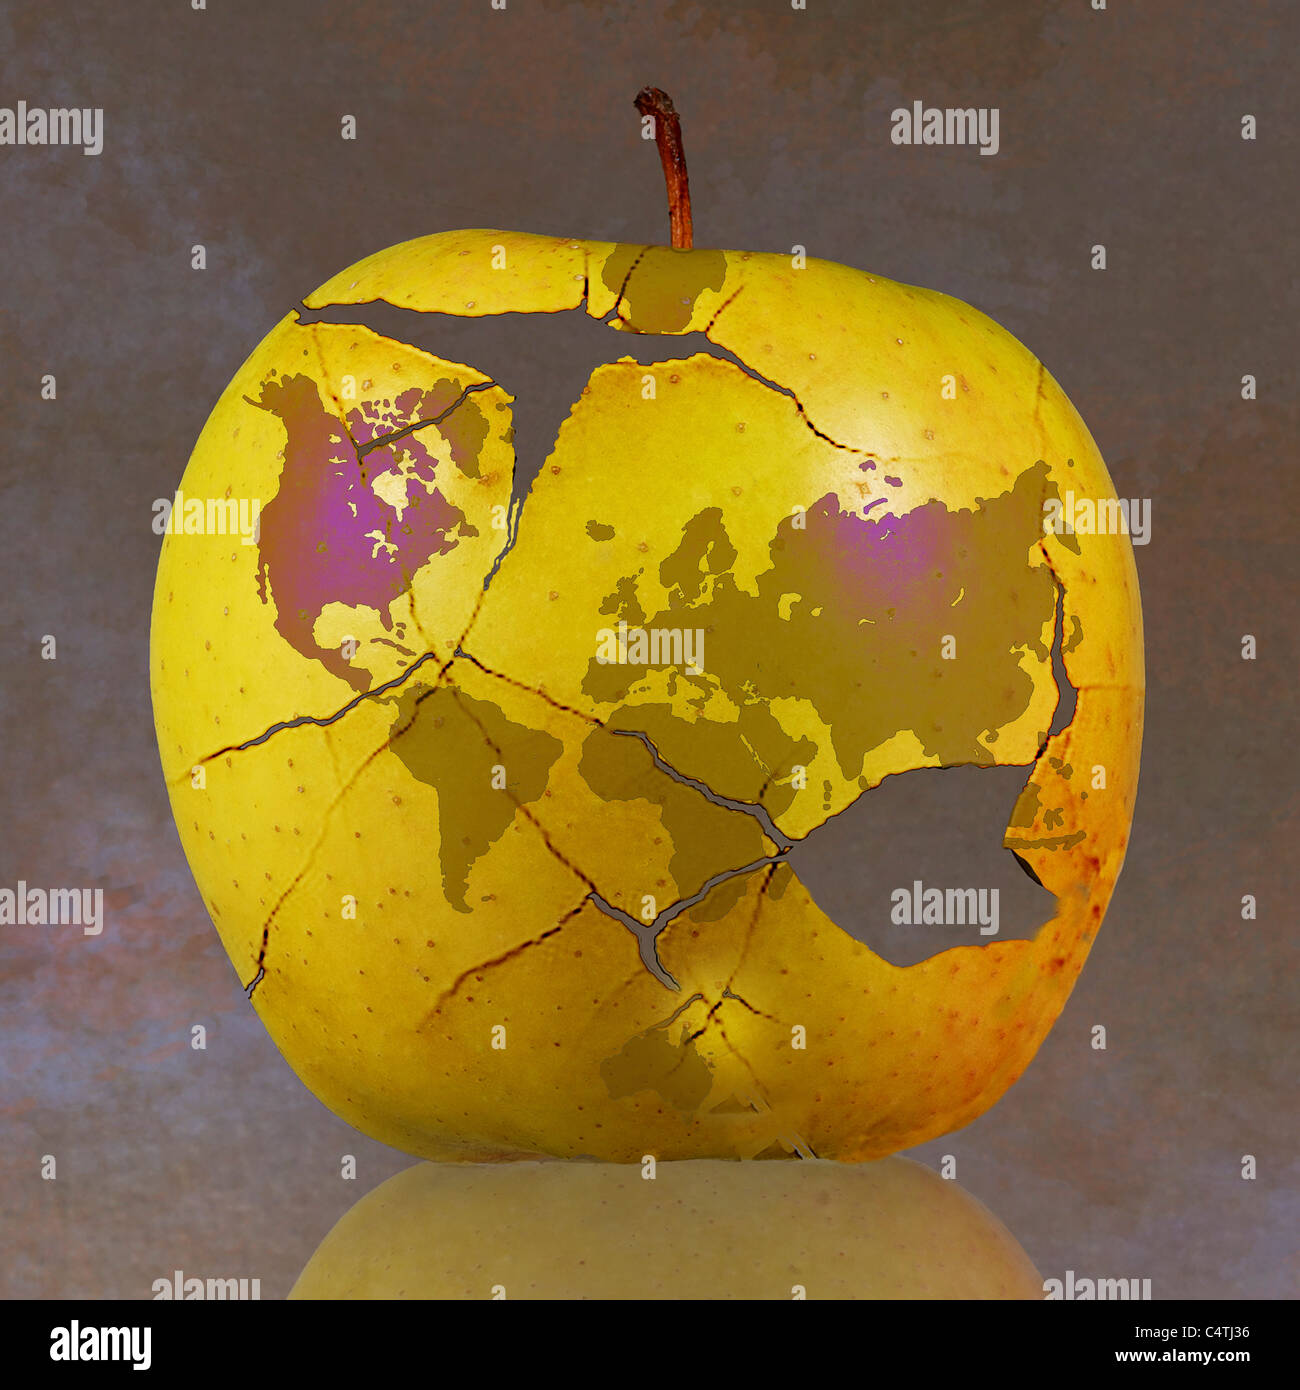 World map on fractured apple - Stock Image